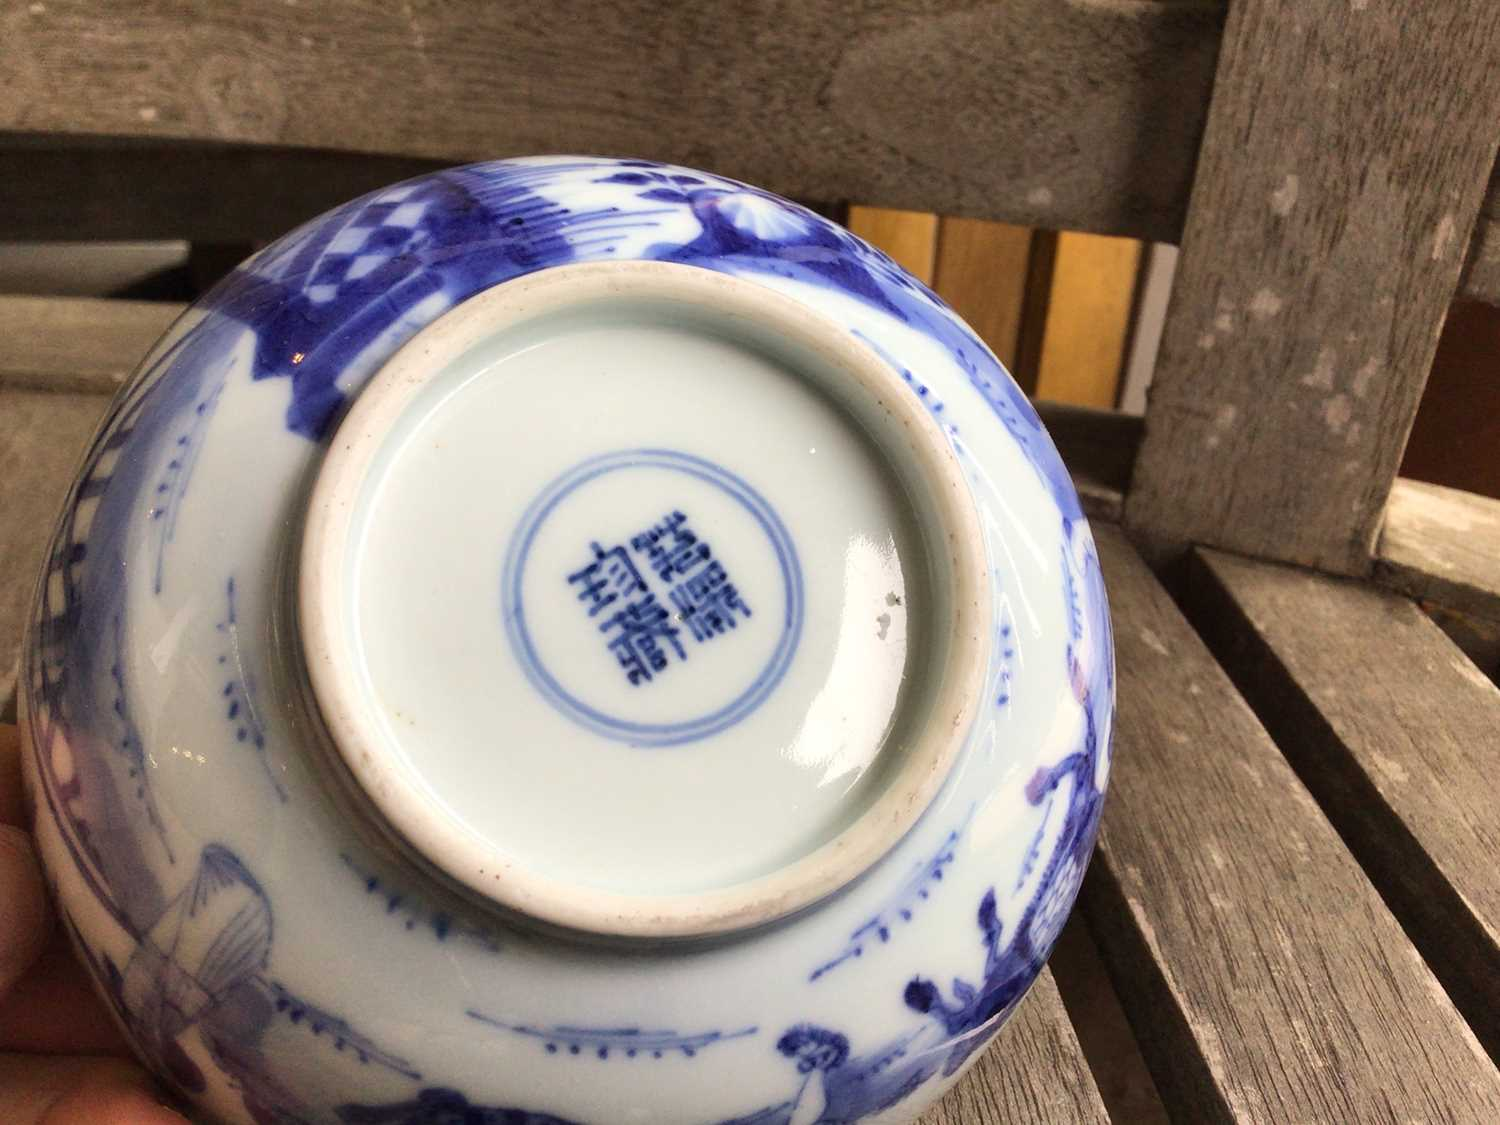 Chinese Kangxi porcelain jug and cover with later silver mount, together with a bowl (2) - Image 16 of 16